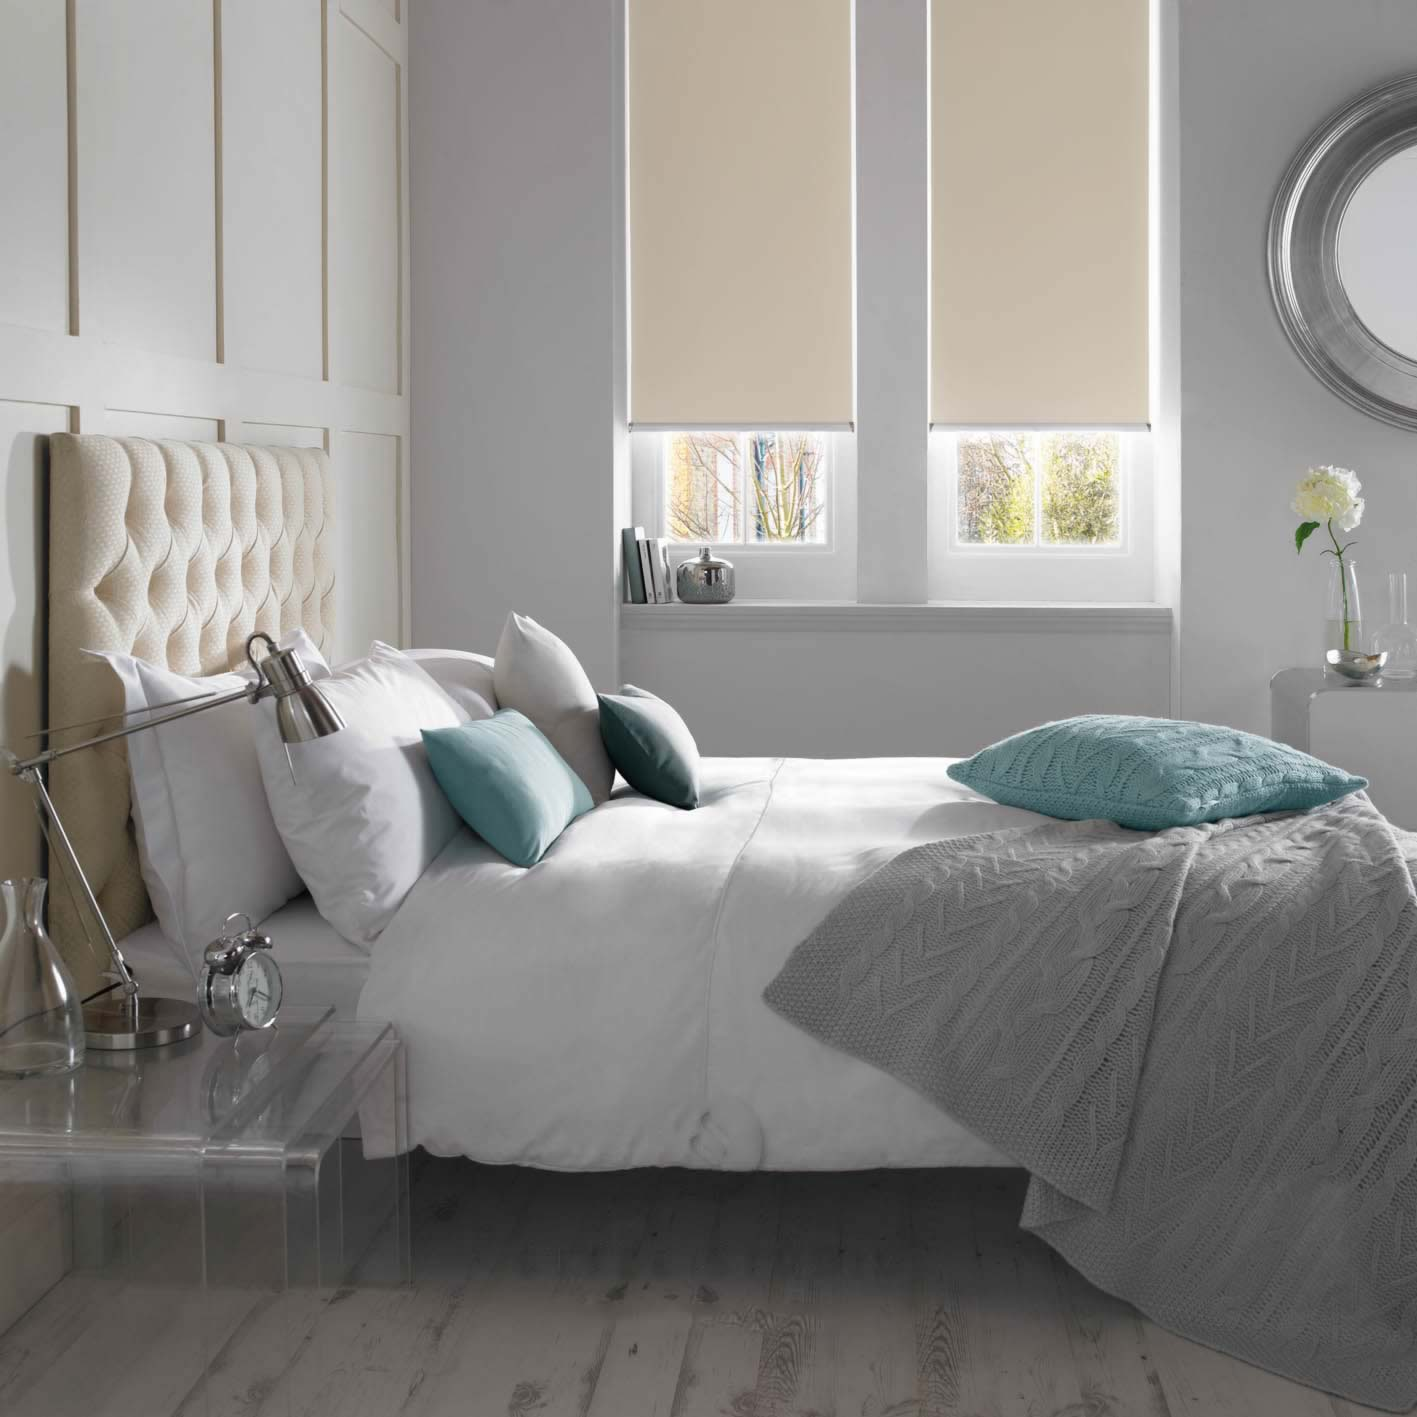 Senses Roller Blinds - Banlight BO Angora